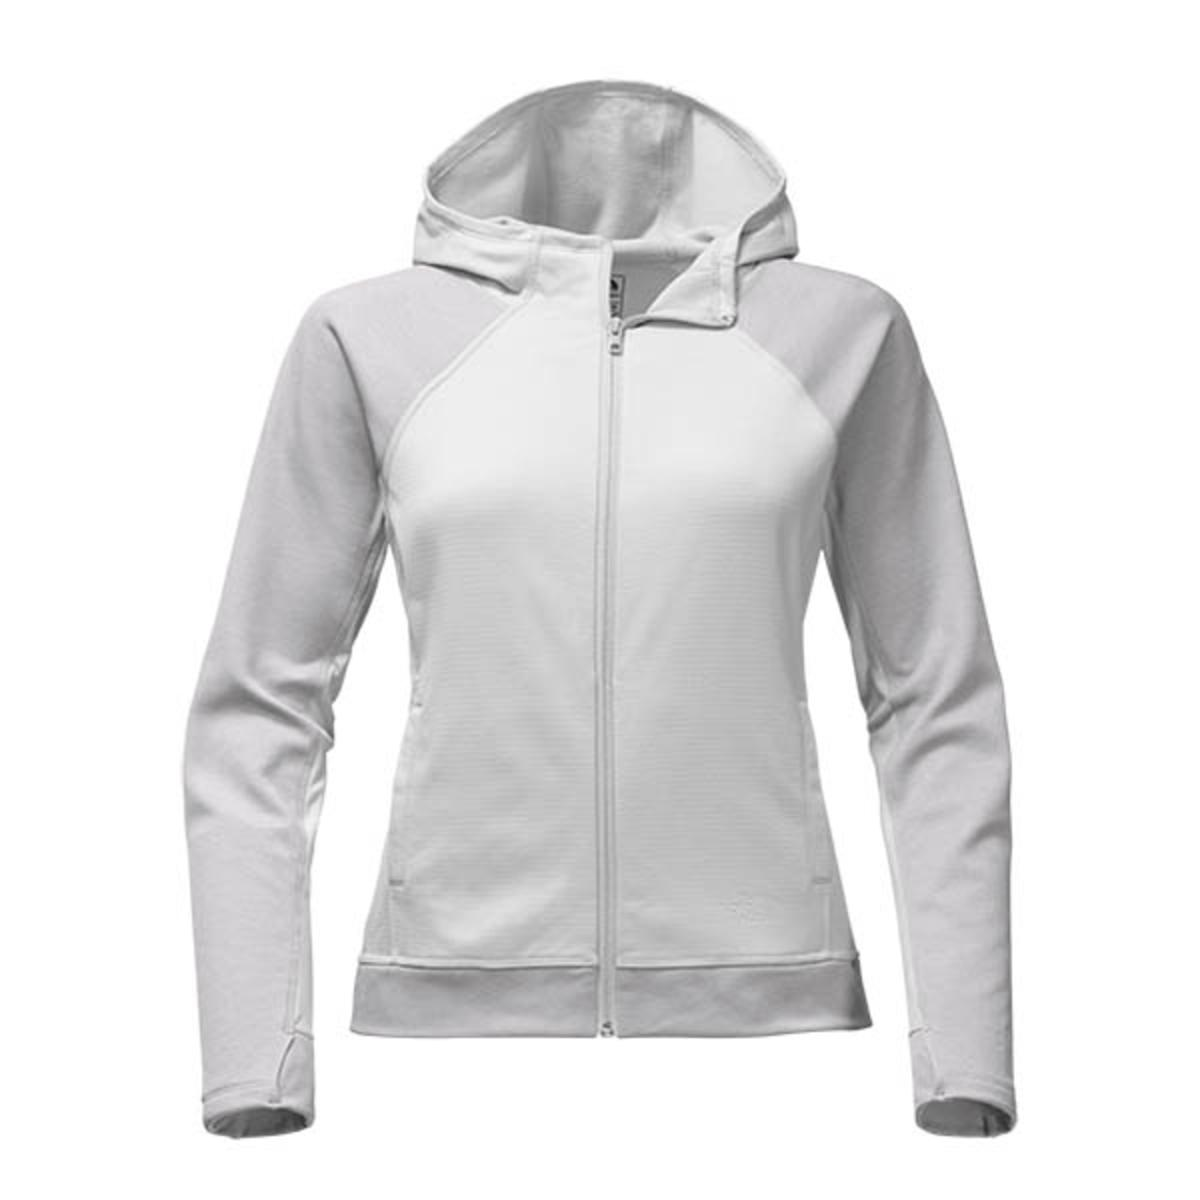 1dc6d01bd0b6 The North Face Women s Versitas Full Zip Hoodie - The Warming Store